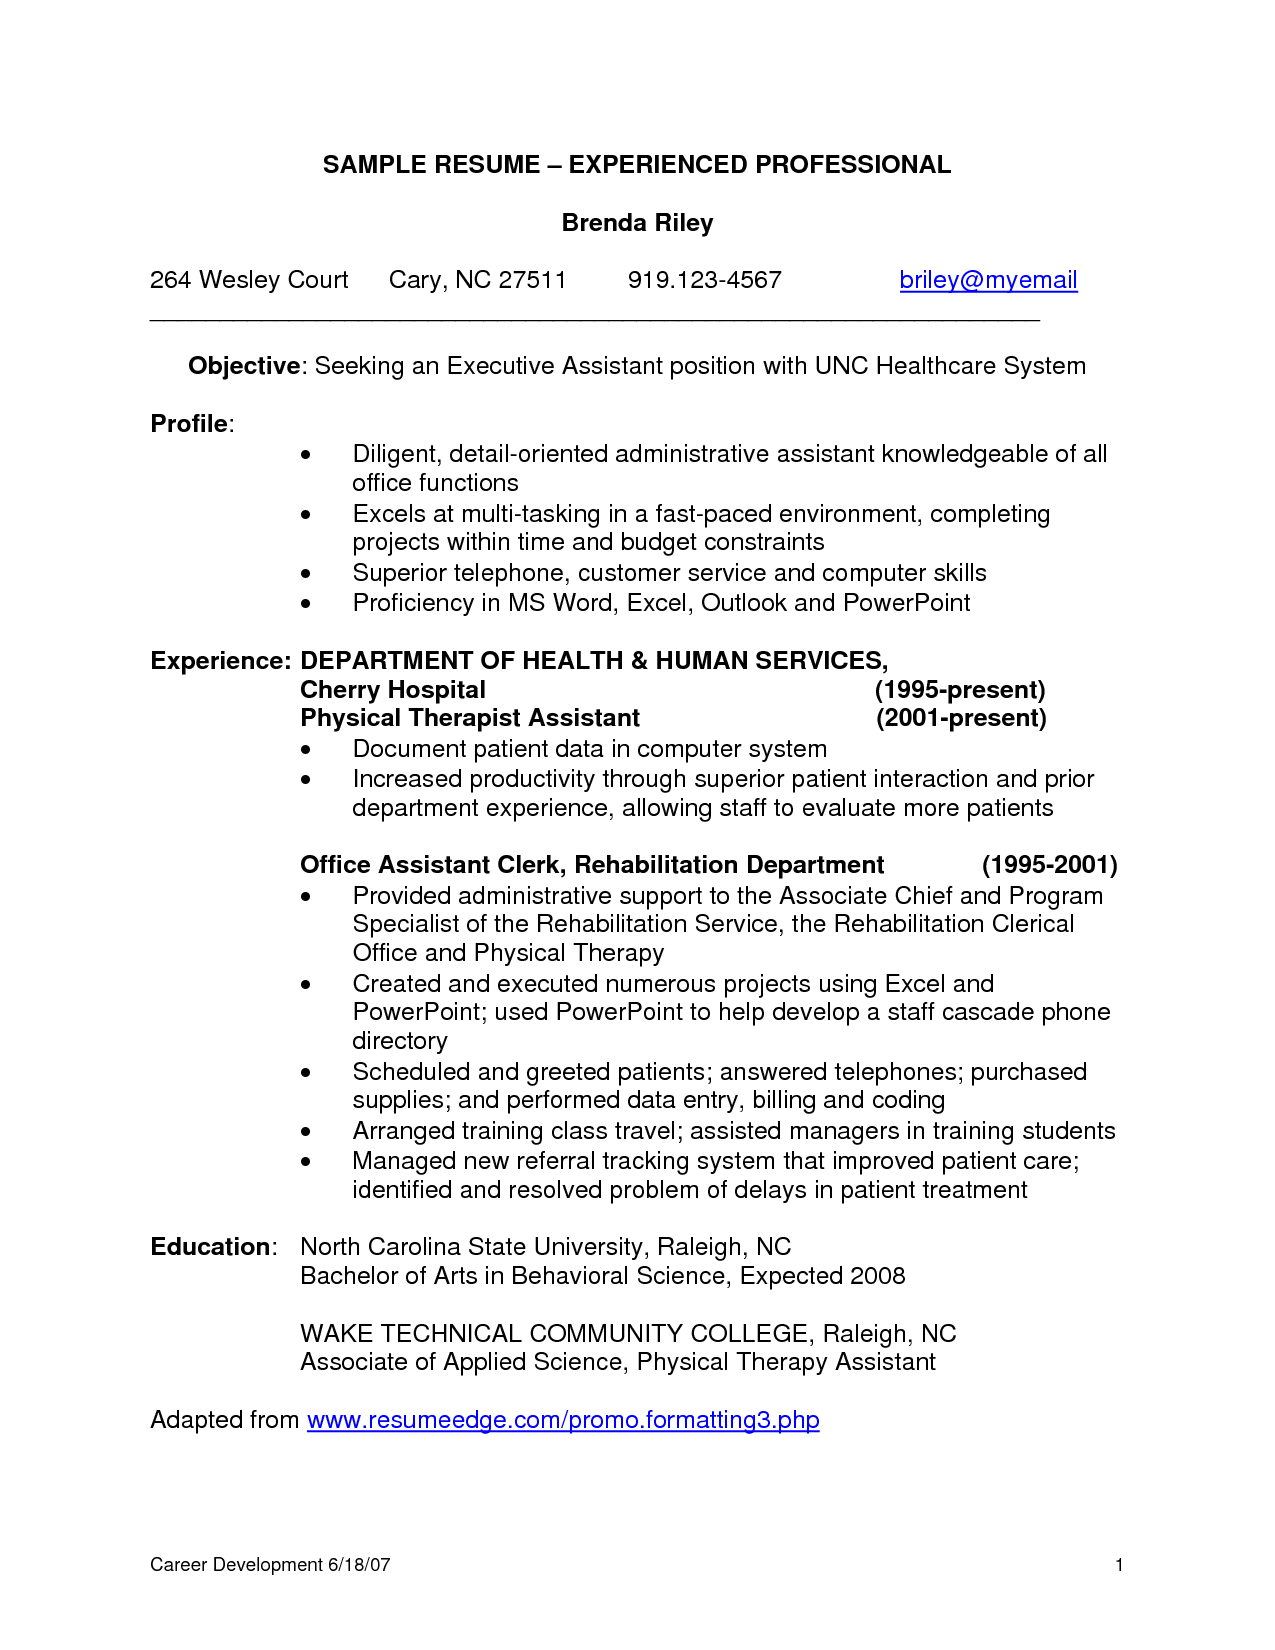 23+ Effective resume writing for experienced professionals ideas in 2021